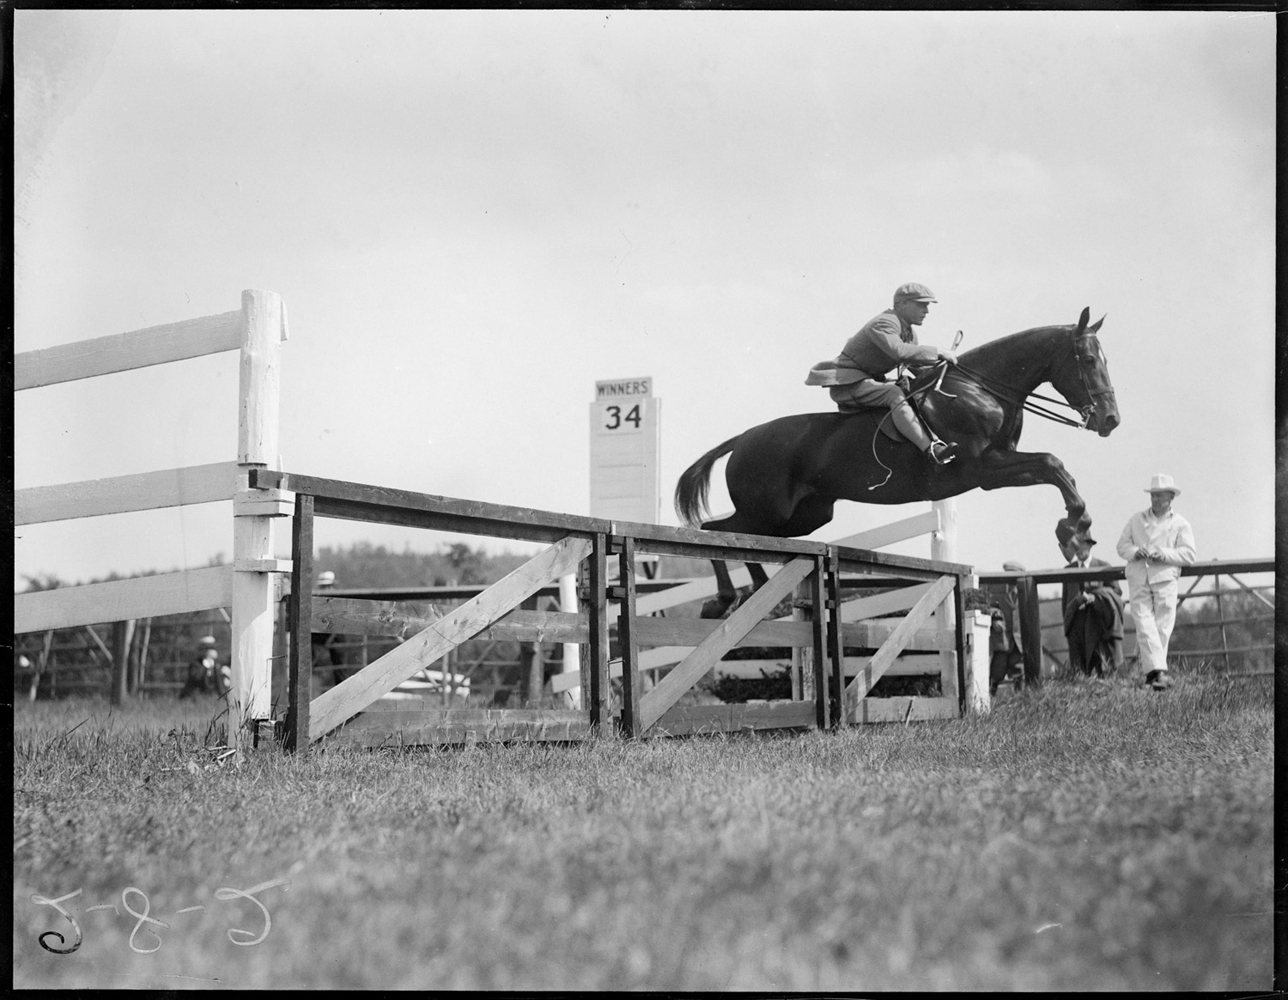 Bayard Tuckerman on Mrs. J. H. Howard's Irish Rose at the Millwood Hunt, June 1927 (Courtesy of the Boston Public Library, Leslie Jones Collection)